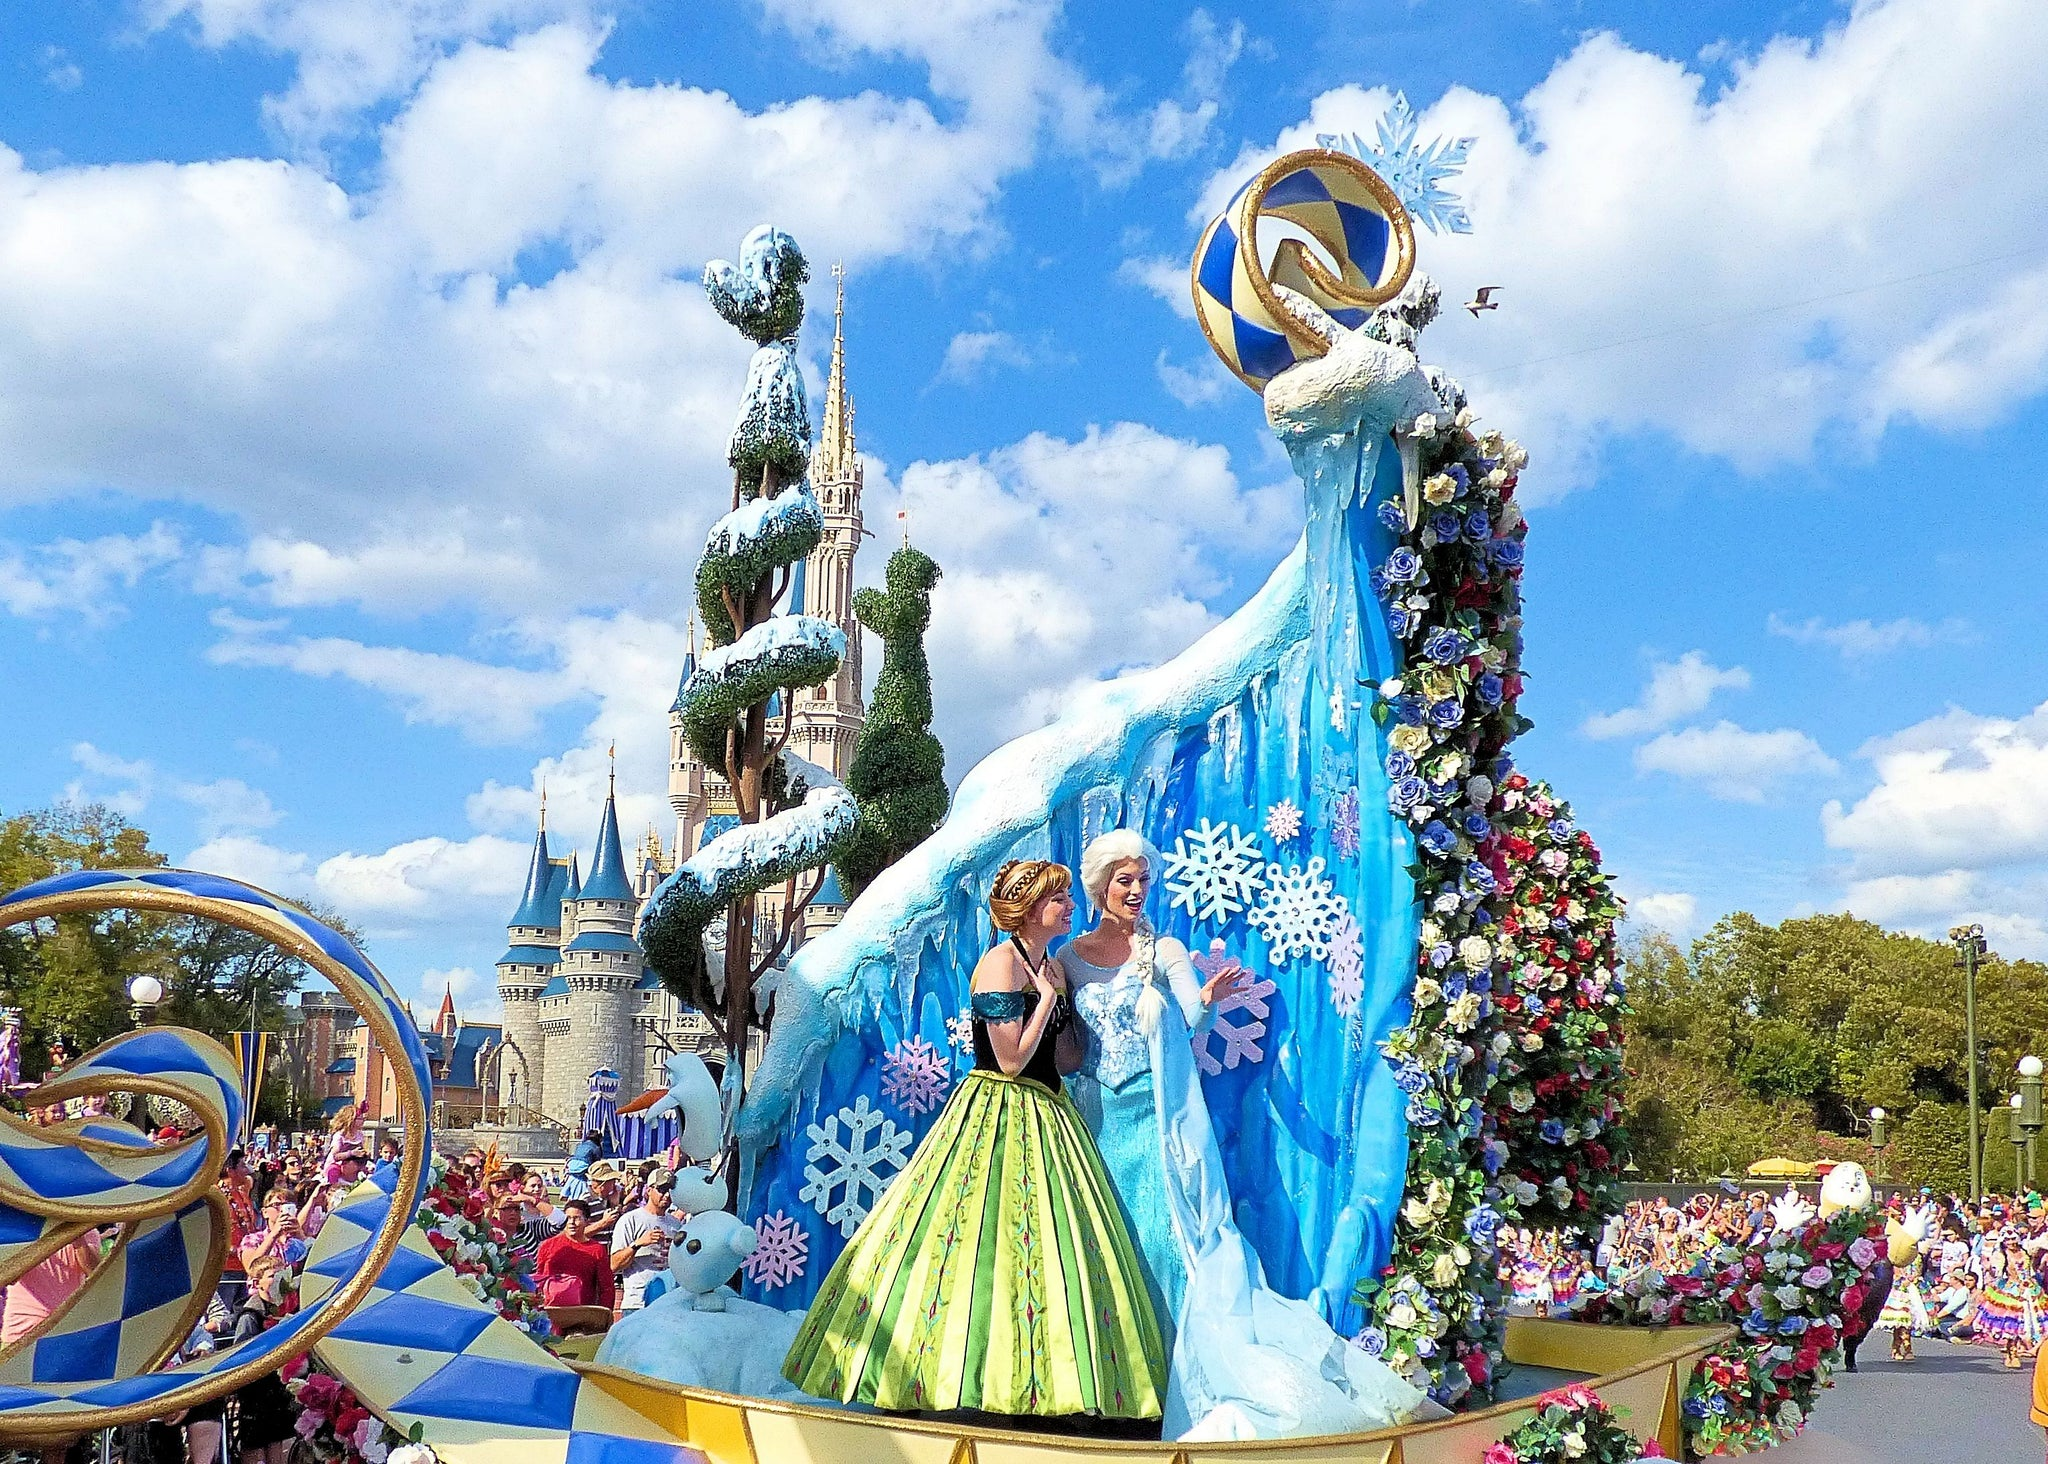 Anna and Elsa Frozen Festival of Fantasy Parade